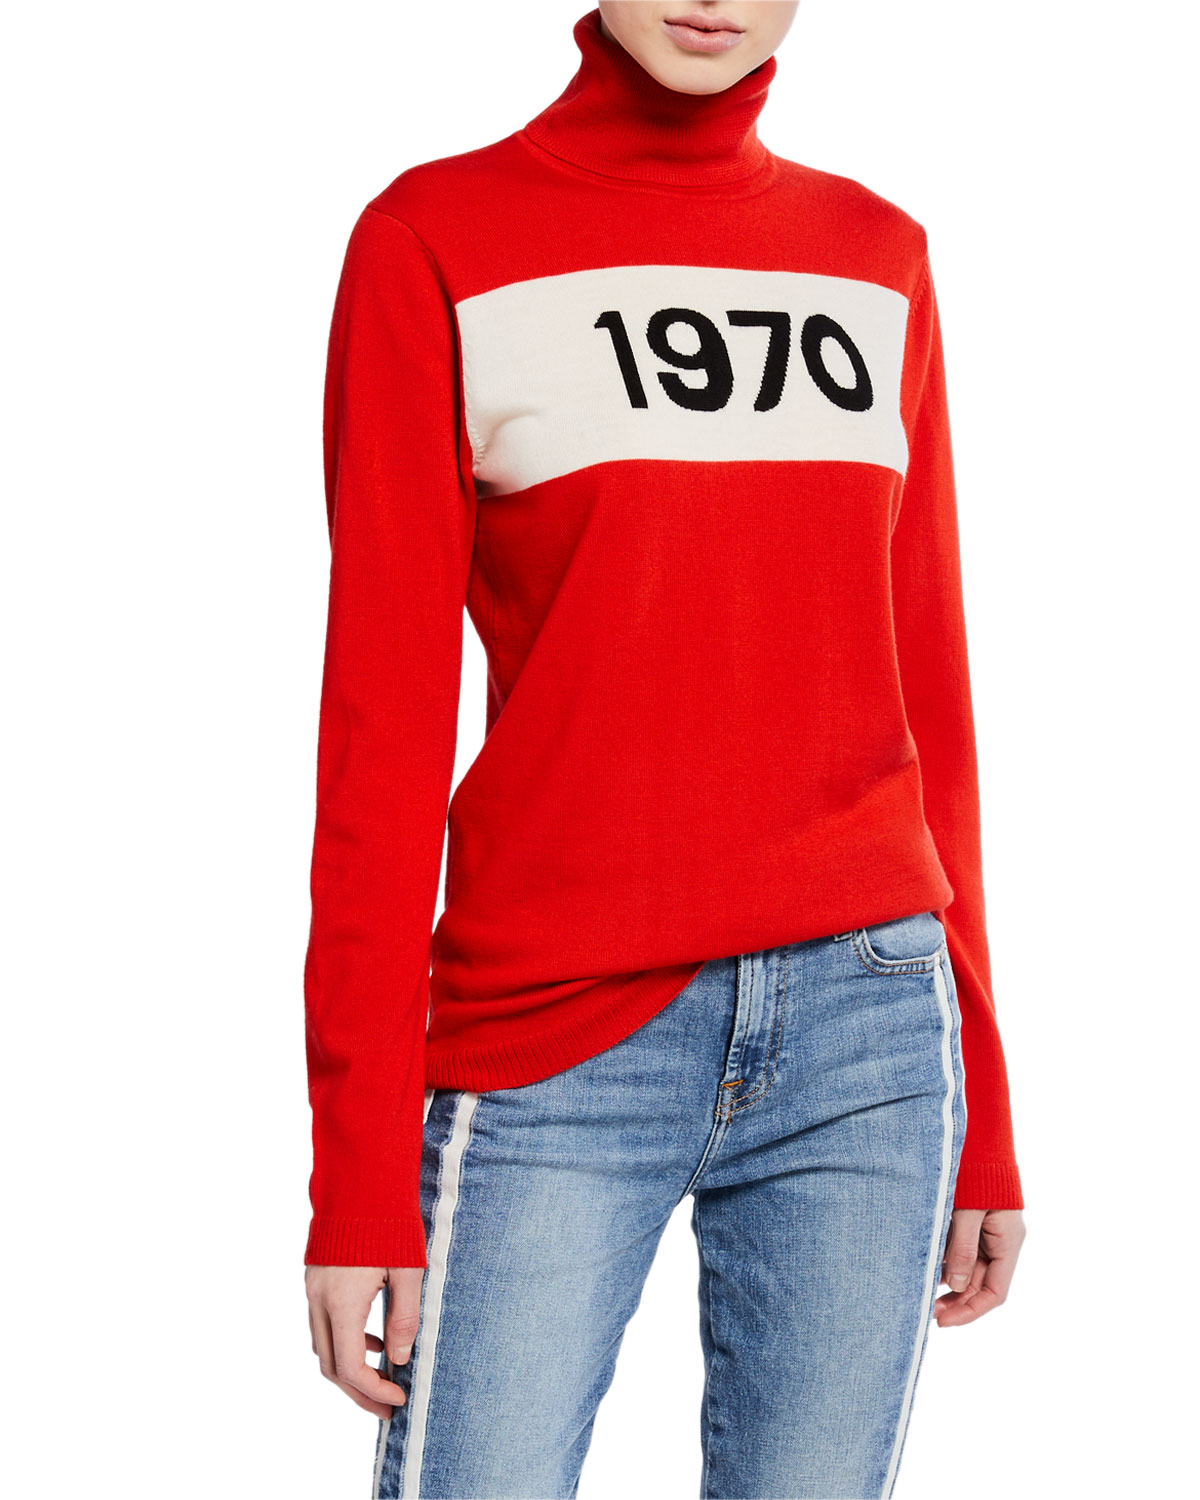 1970 Graphic Wool Pullover Sweater